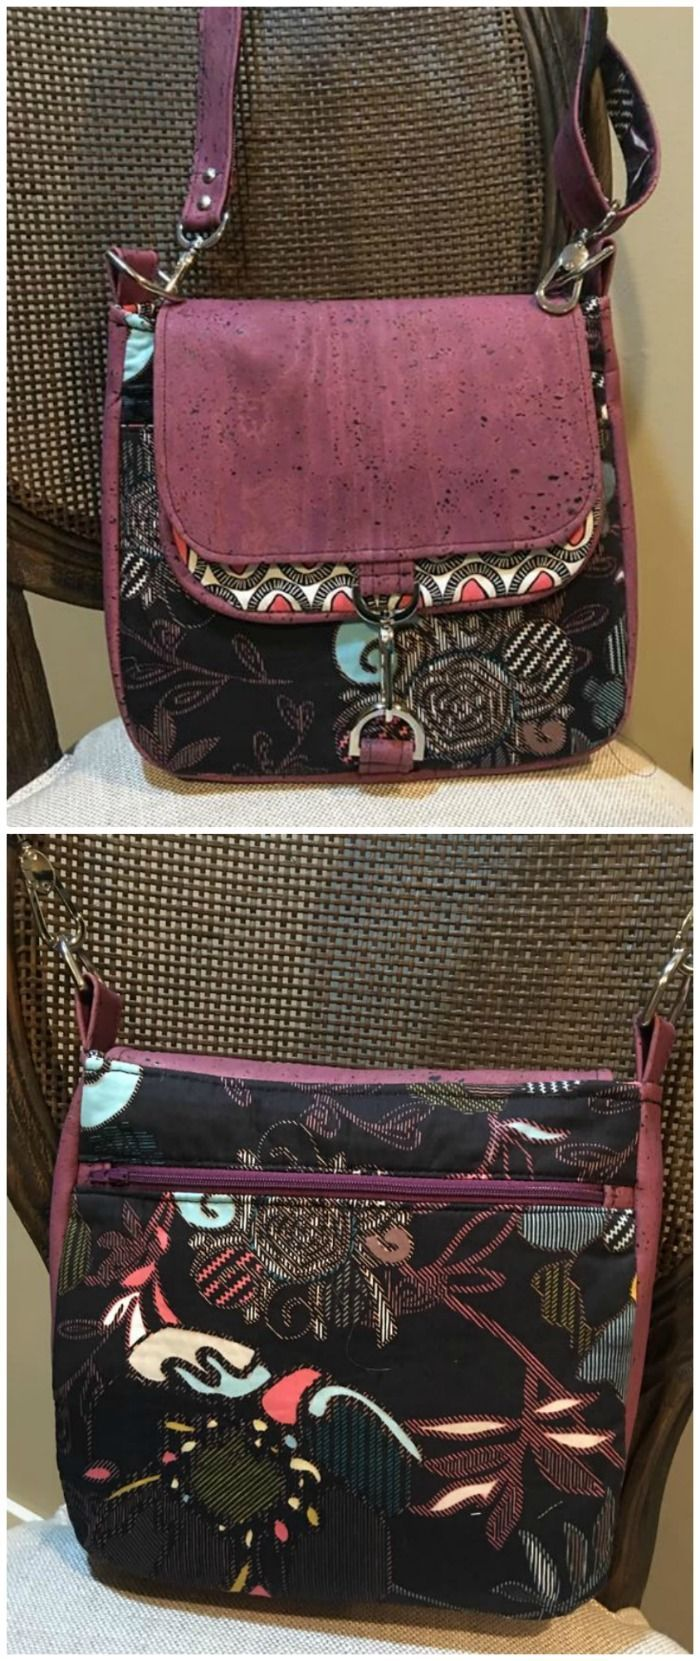 Sarah Satchel sewing pattern. For quilting cottons, vinyl or leather, home decor fabrics - this versatile bag sewing pattern works well with them all!